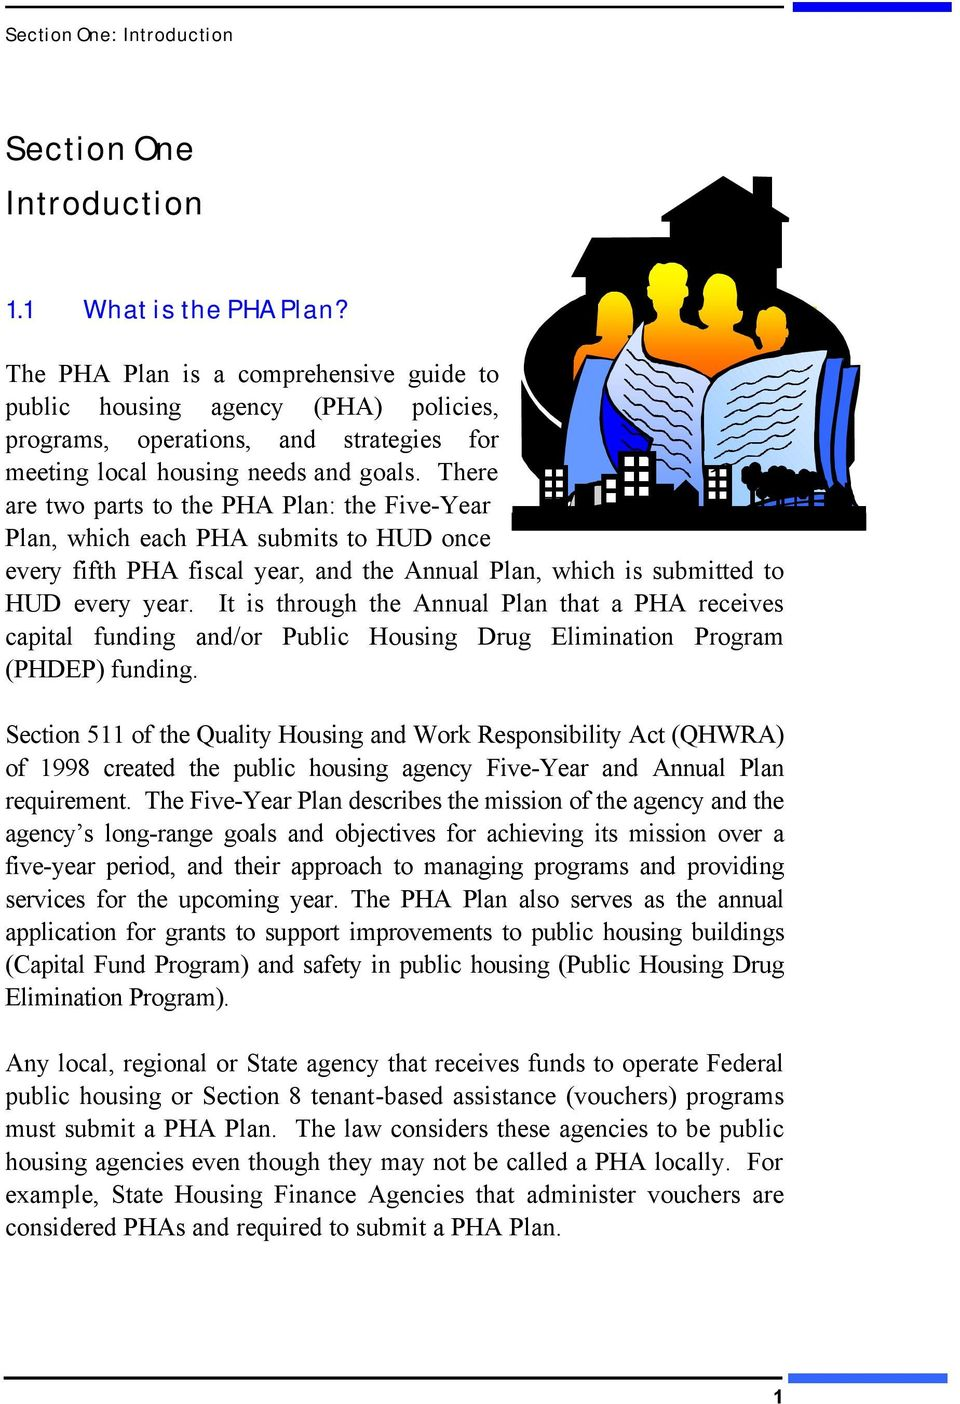 There are two parts to the PHA Plan: the Five-Year Plan, which each PHA submits to HUD once every fifth PHA fiscal year, and the Annual Plan, which is submitted to HUD every year.